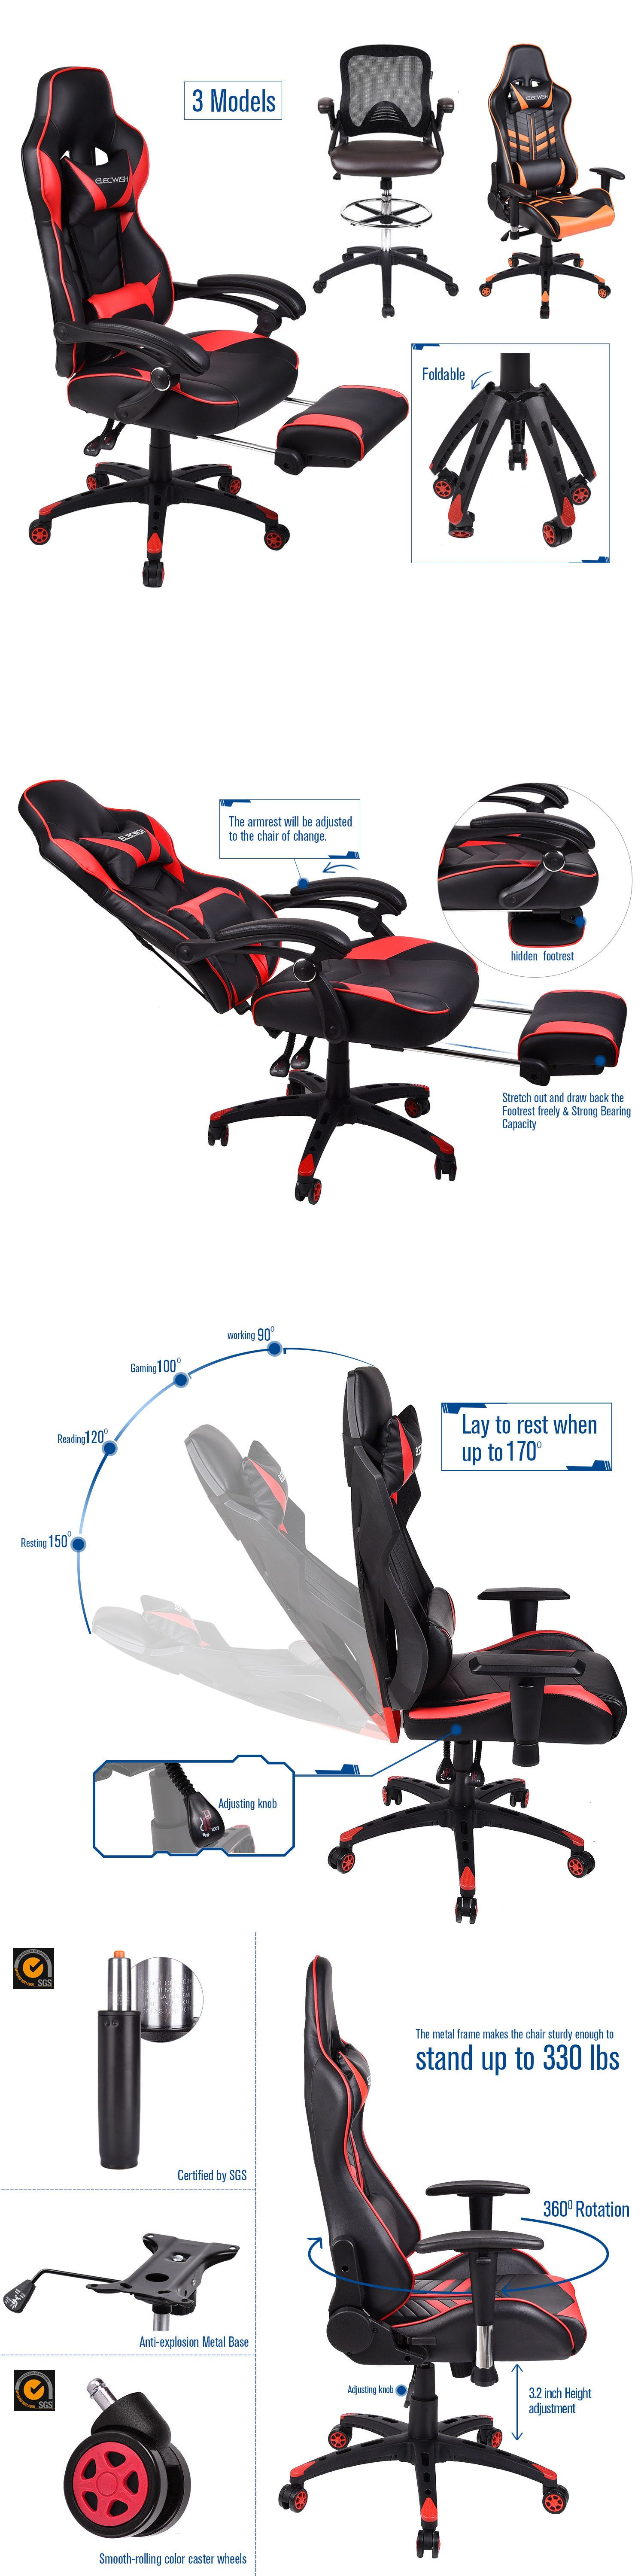 Chairs 54235 office racing gaming chair drafting stool